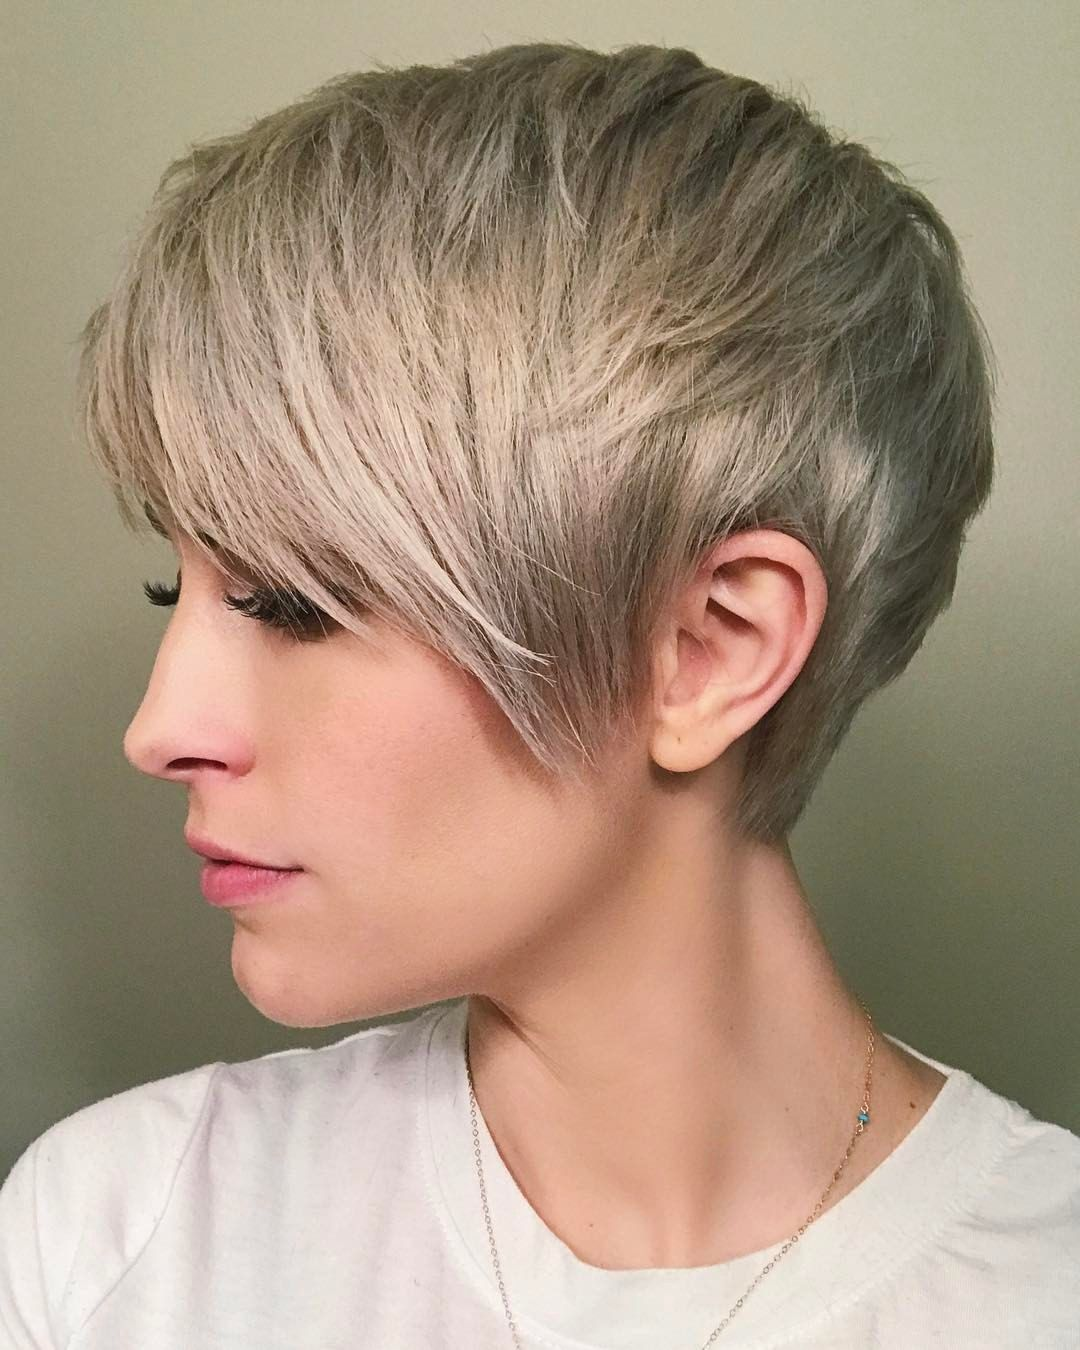 Pin by emma louise madden on asymmetric hurrrrr pinterest amanda